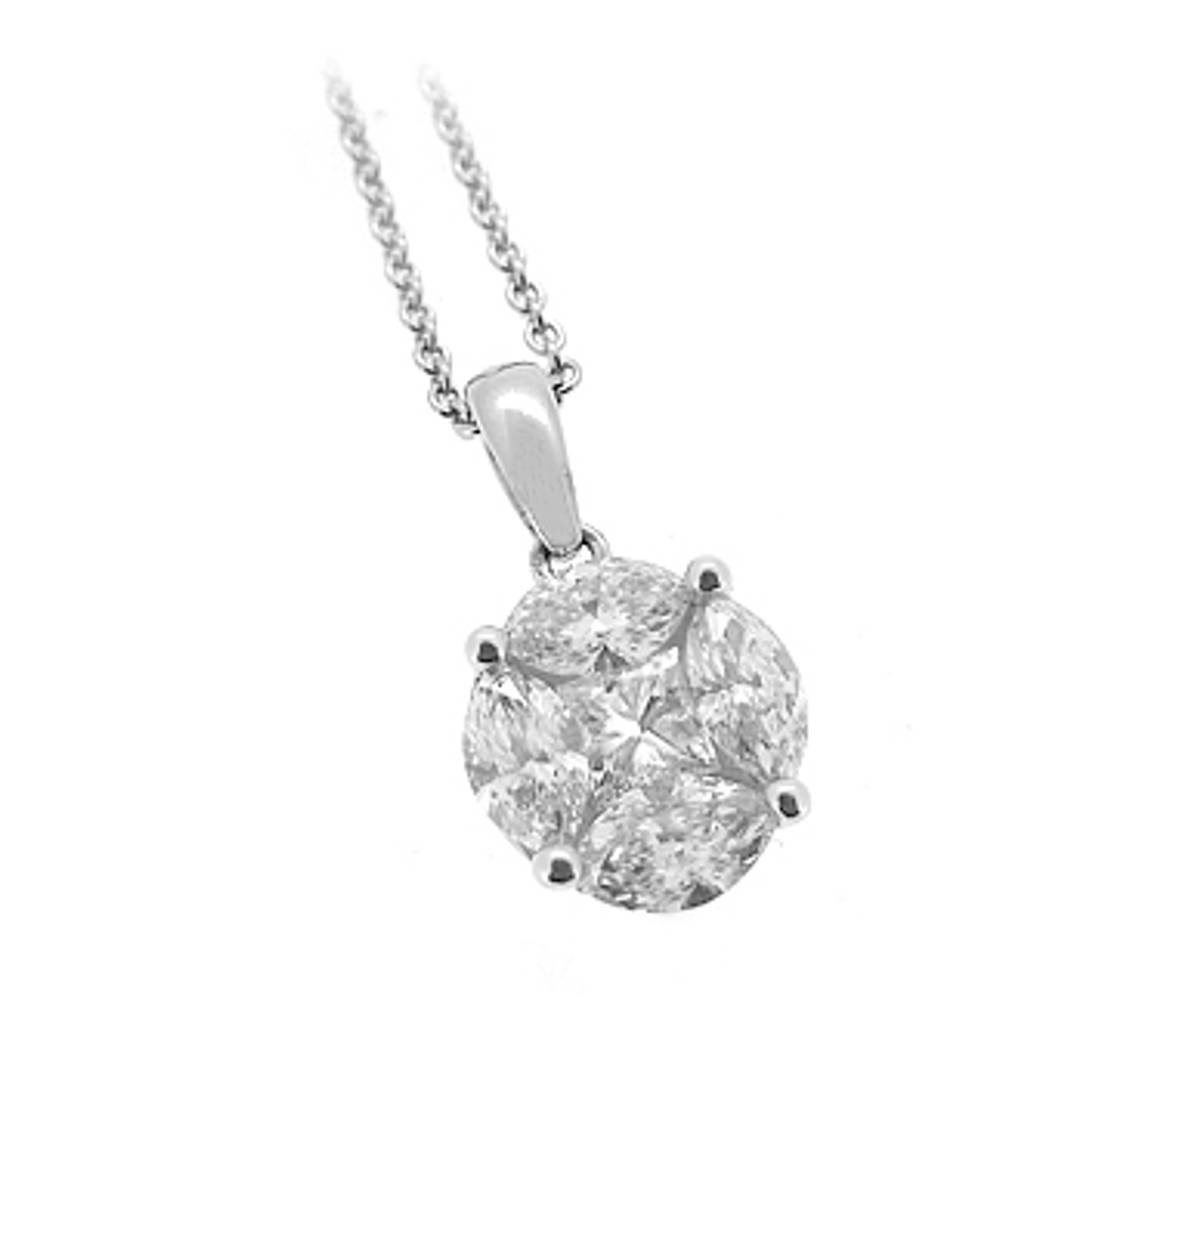 """18k white gold marquise & princess cut diamond cluster pendant on 18k white gold 18"""" Chain  Total diamond weight 0.86cts Pendant length including loop 1.5cmPendant width 0.8cm"""